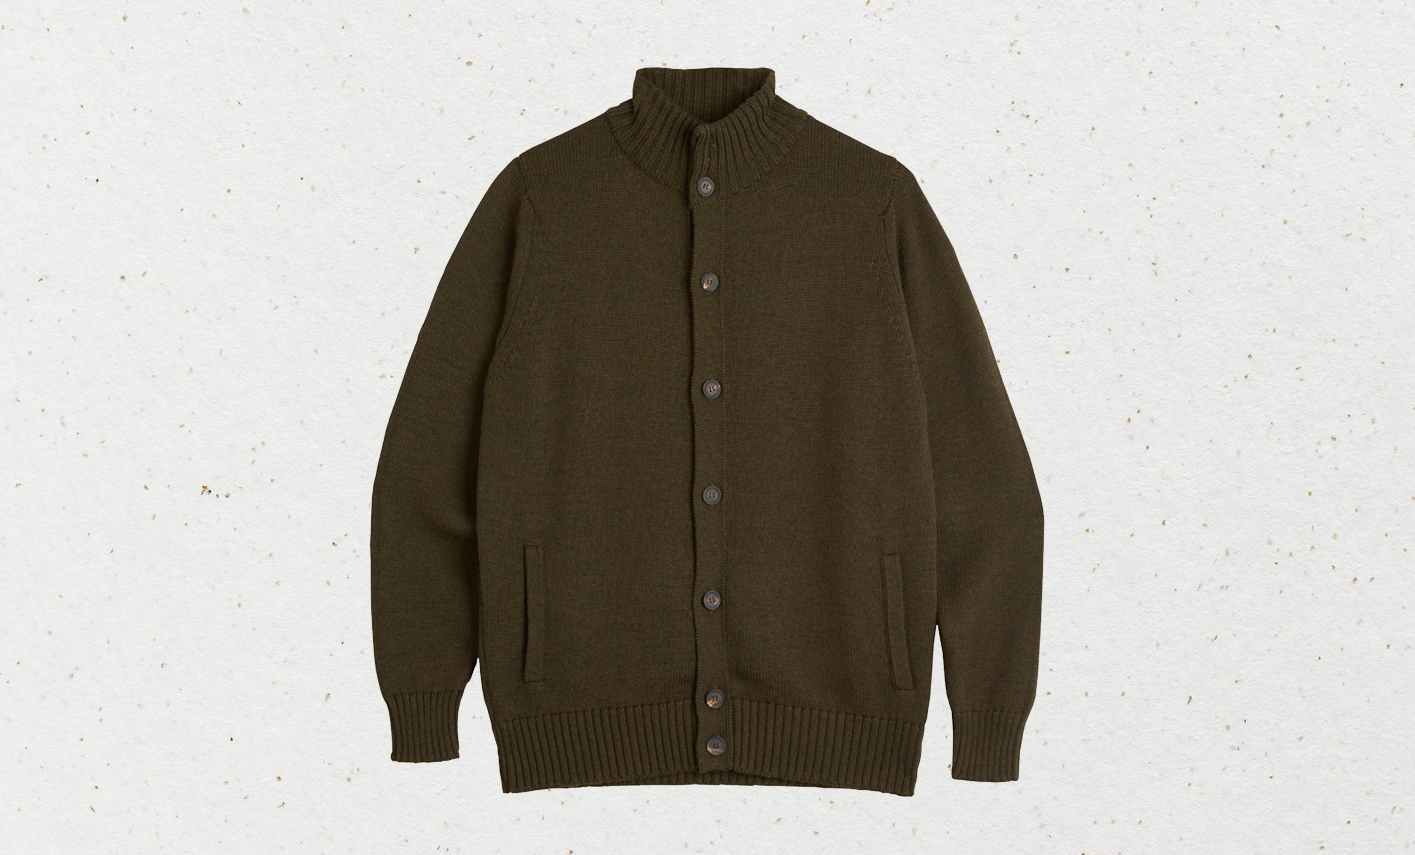 Trunk Clothiers' contemporary but classic 'Norfolk' cardigan